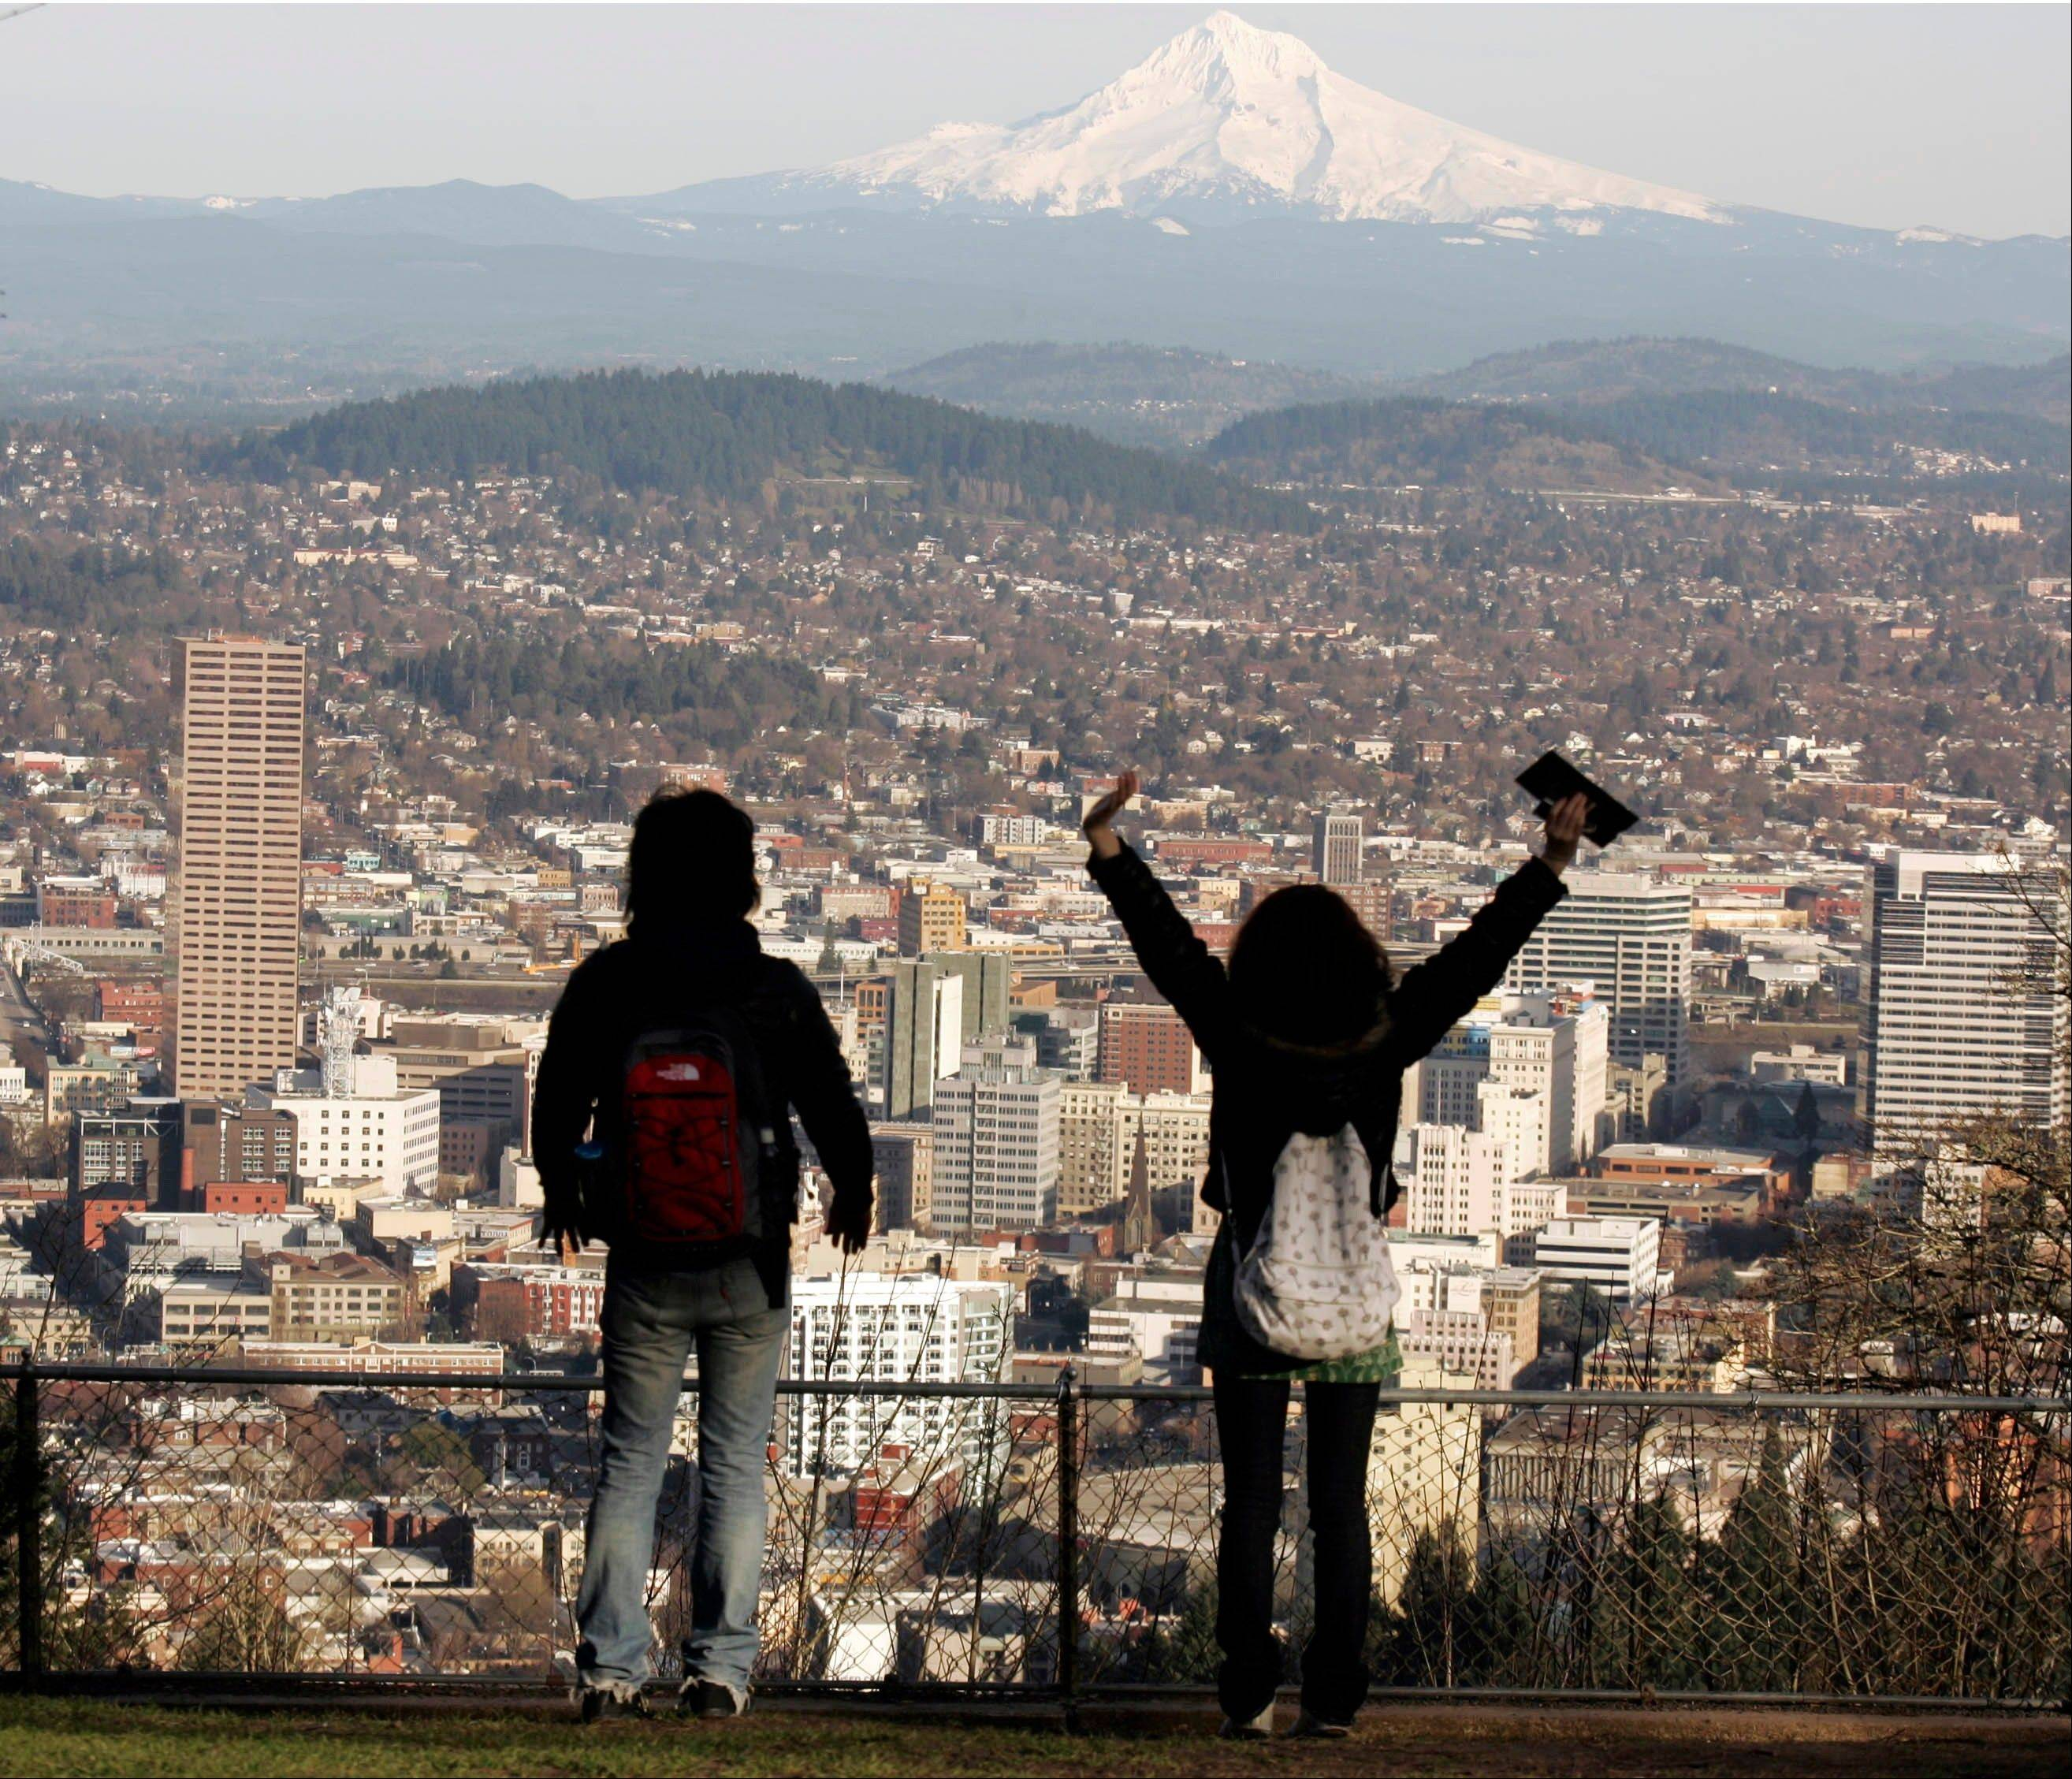 A young couple enjoy the view of Mount Hood looming over downtown Portland, Ore.